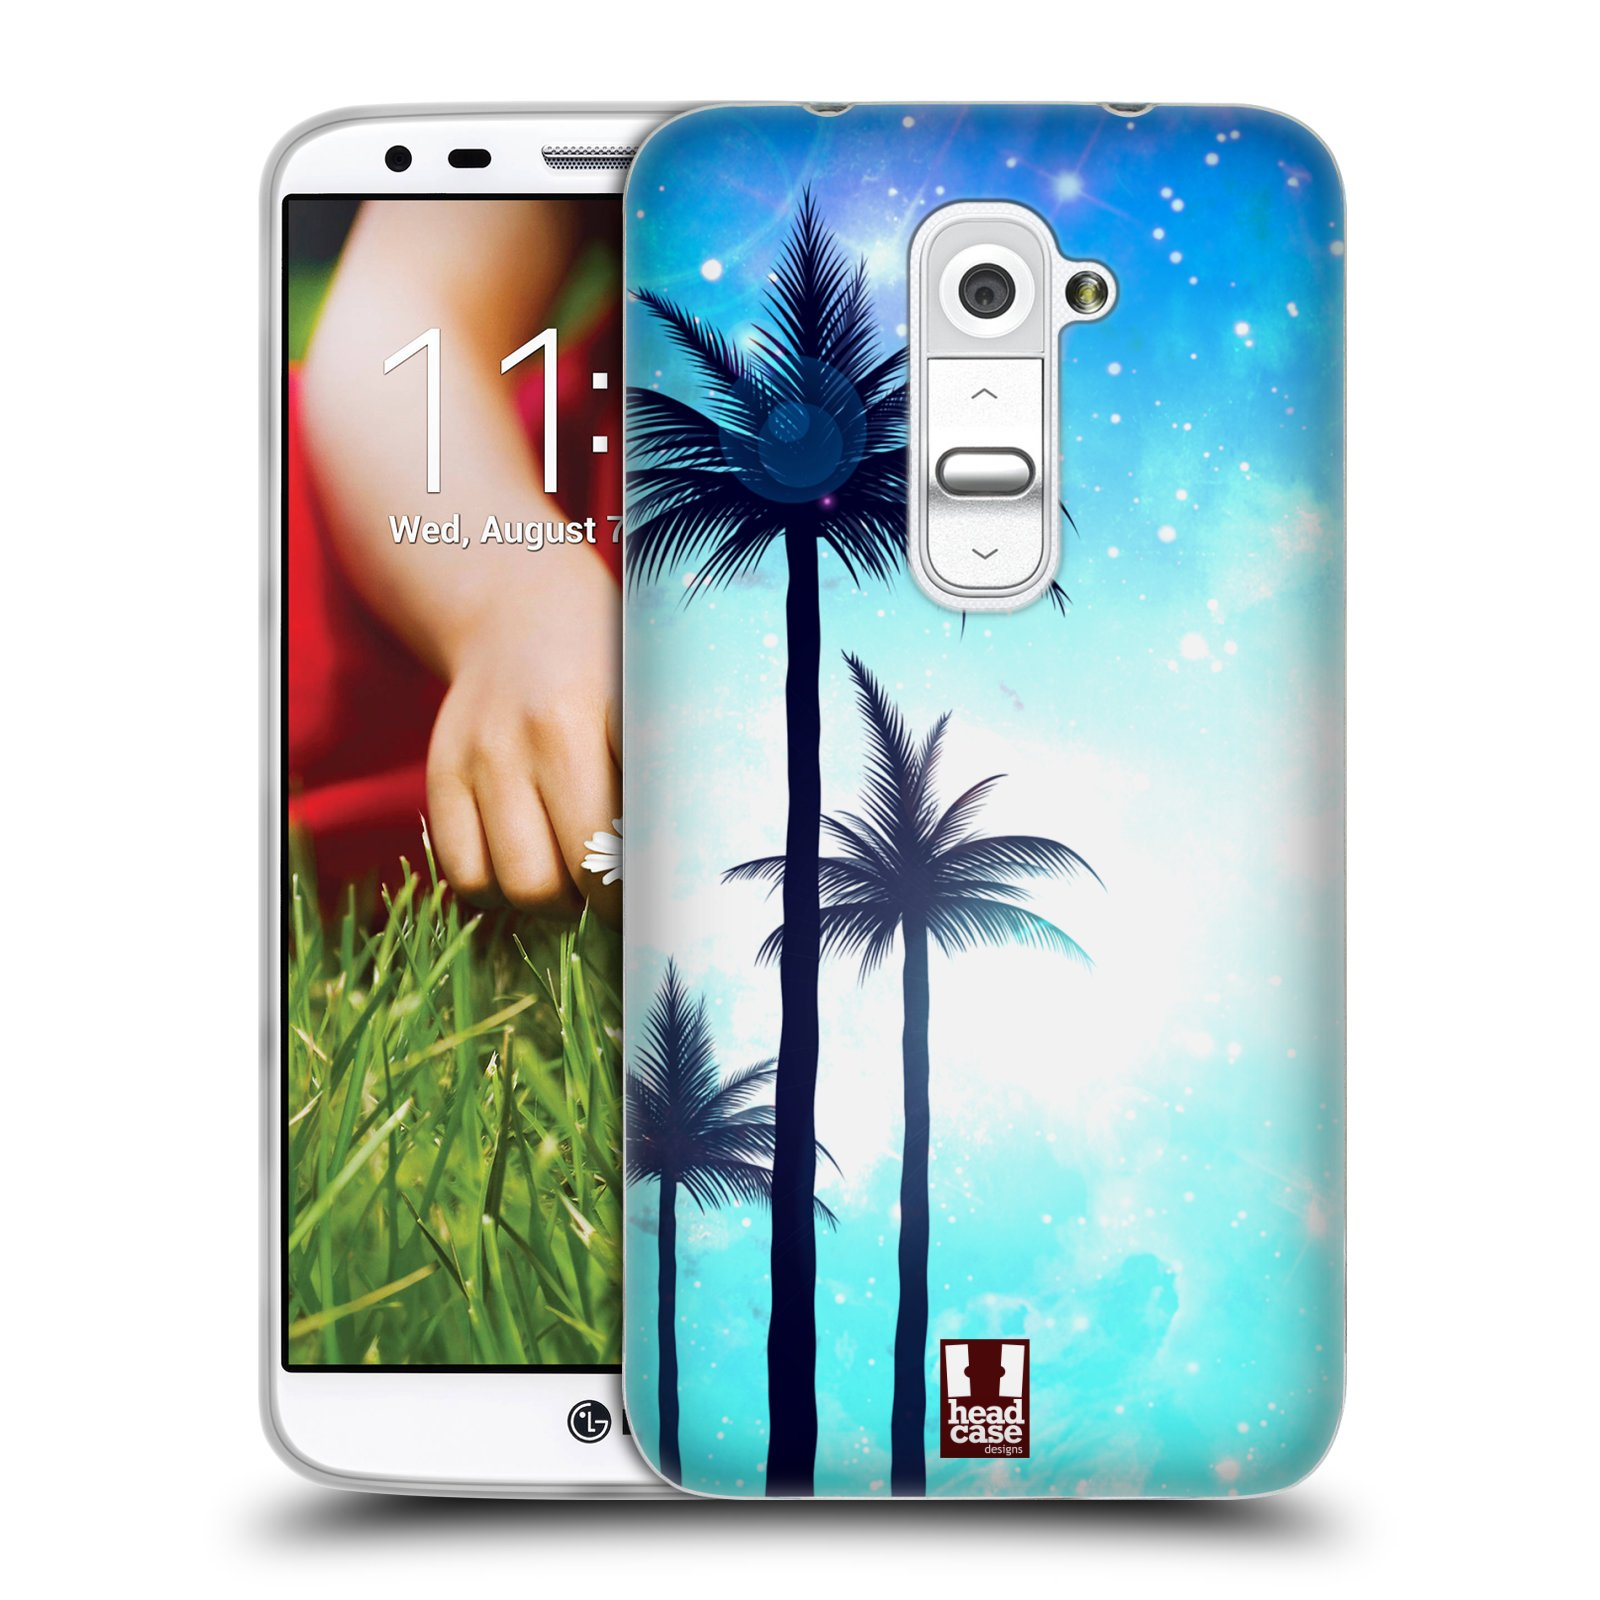 HEAD CASE SUMMER SILHOUETTES SILICONE GEL CASE FOR LG G2 D802